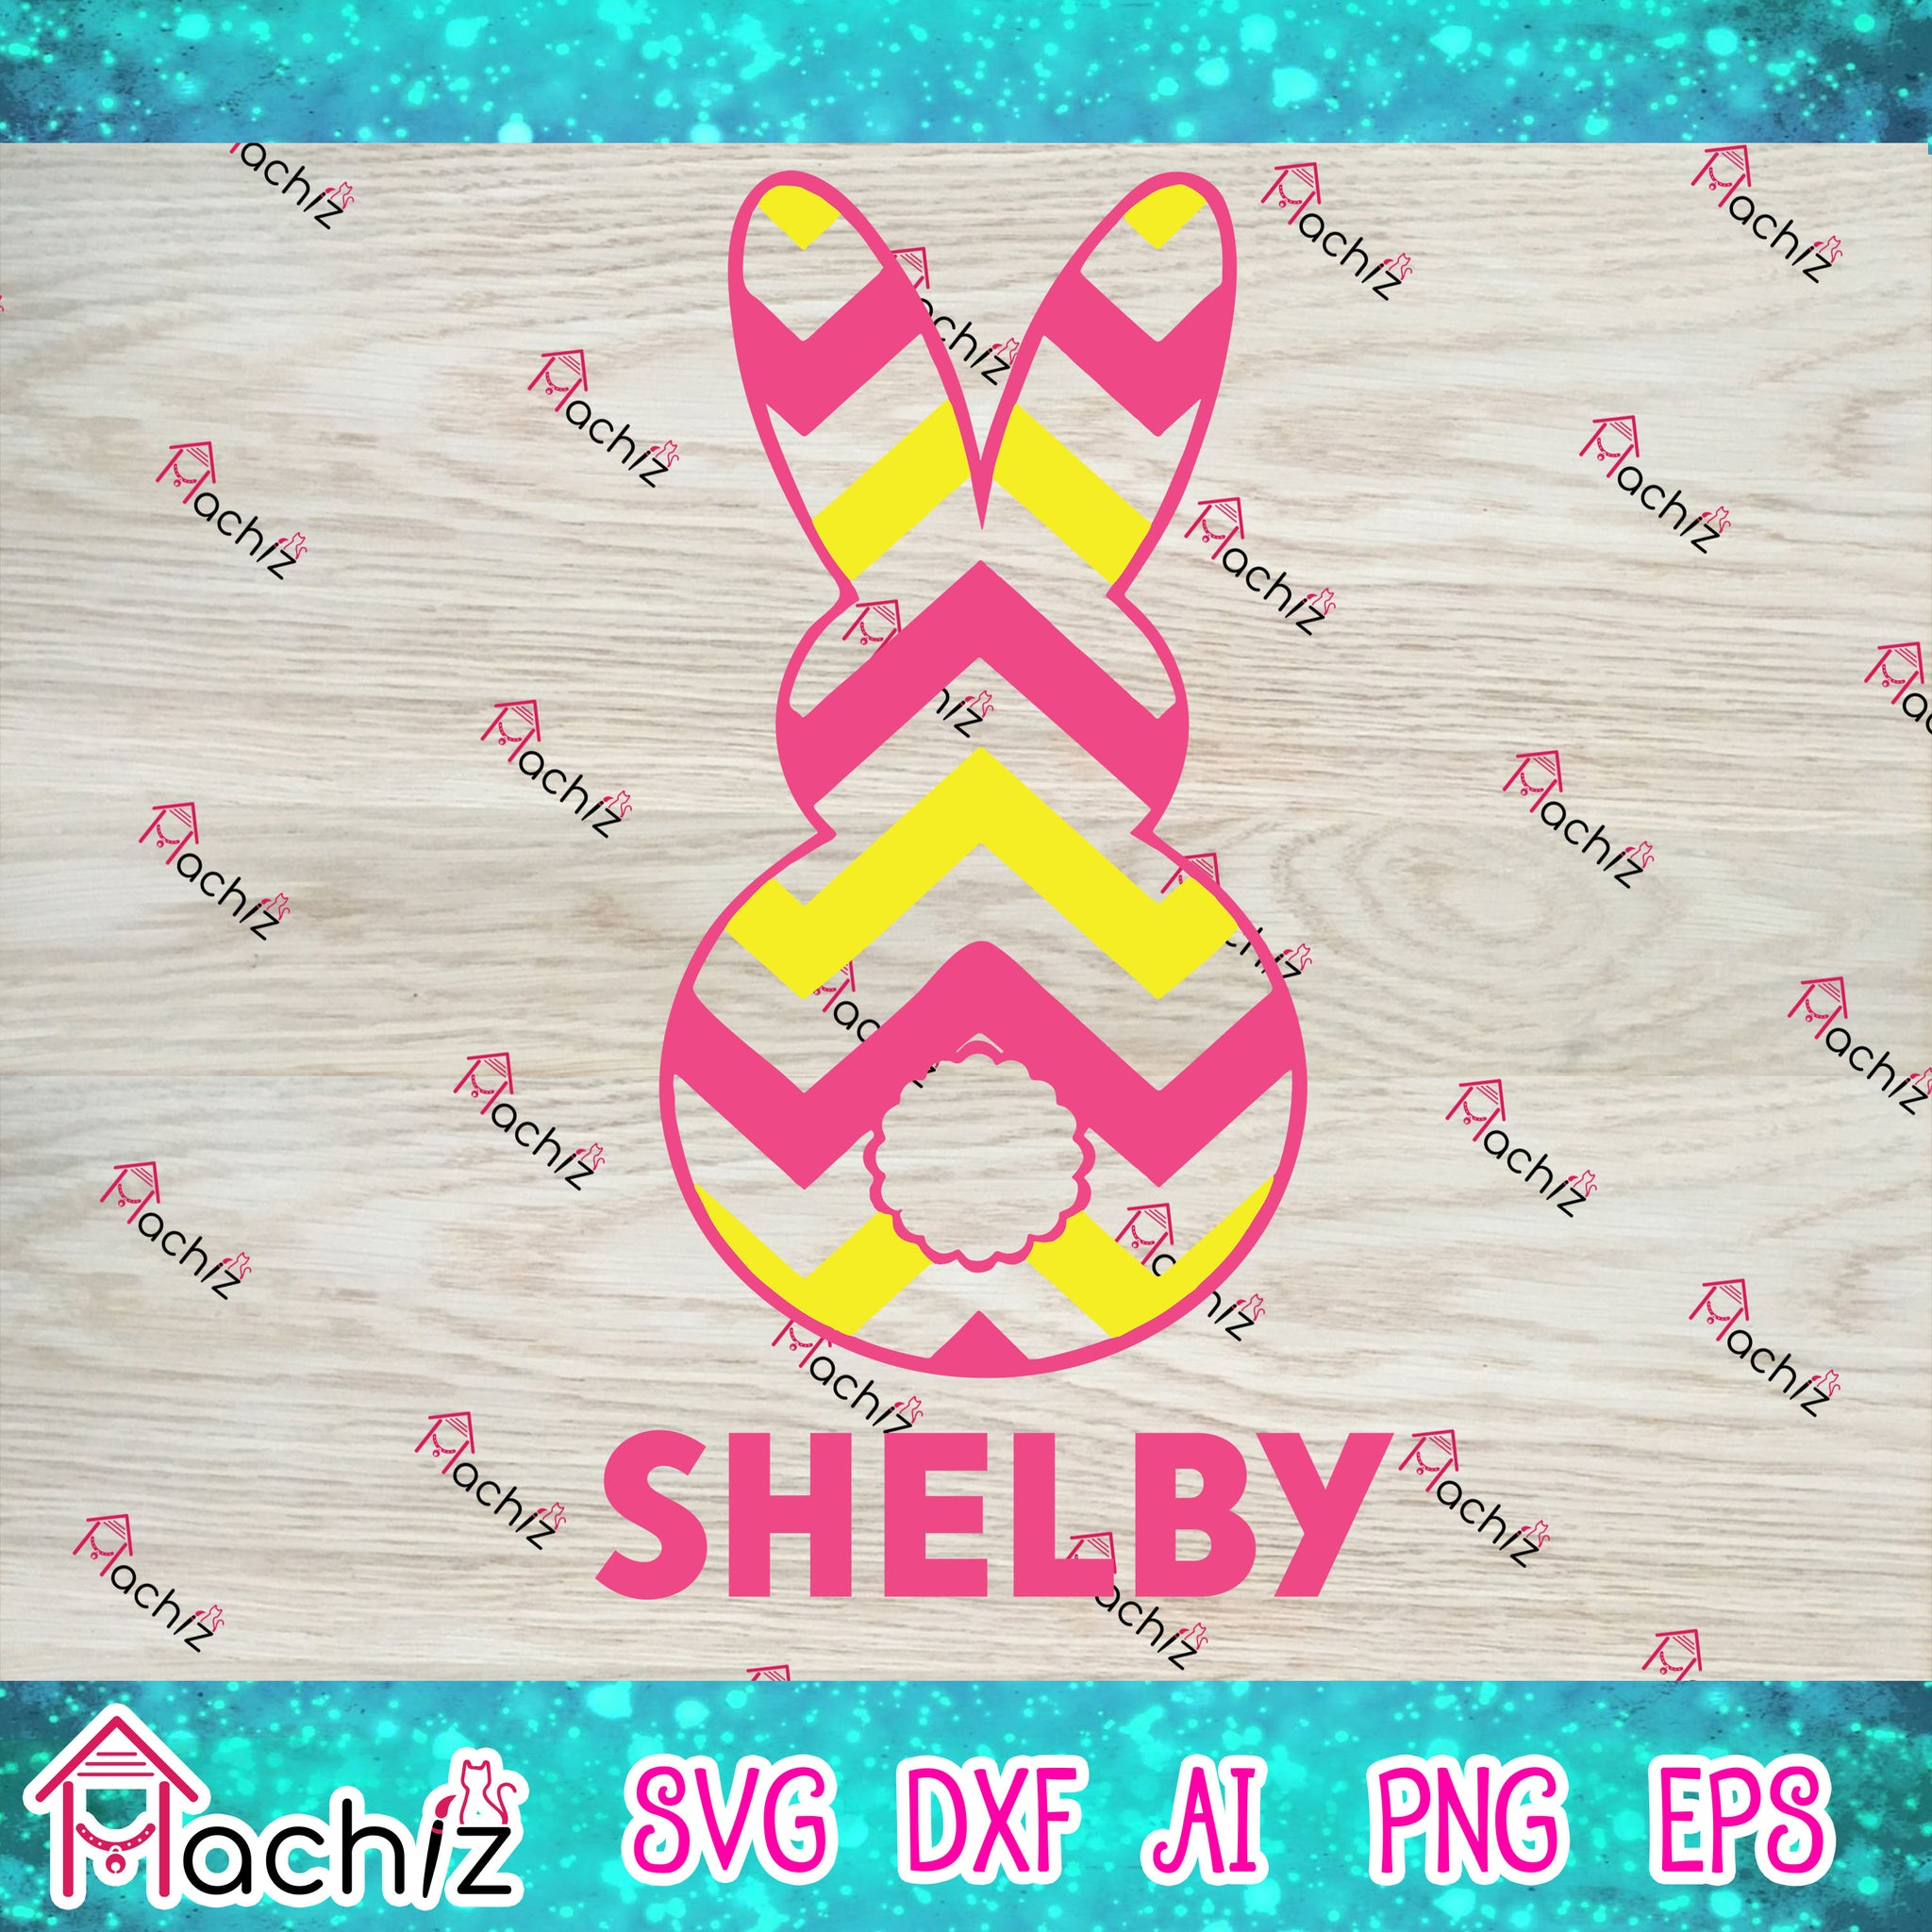 Rabbit shelby,Happy Easter SVG, Easter svg, Jesus svg, Easter Bunny svg, Easter Quote svg, Easter Egg svg,vector,svg, eps, dxf, Png Silhouette Cameo or Cricut Digital Download Files